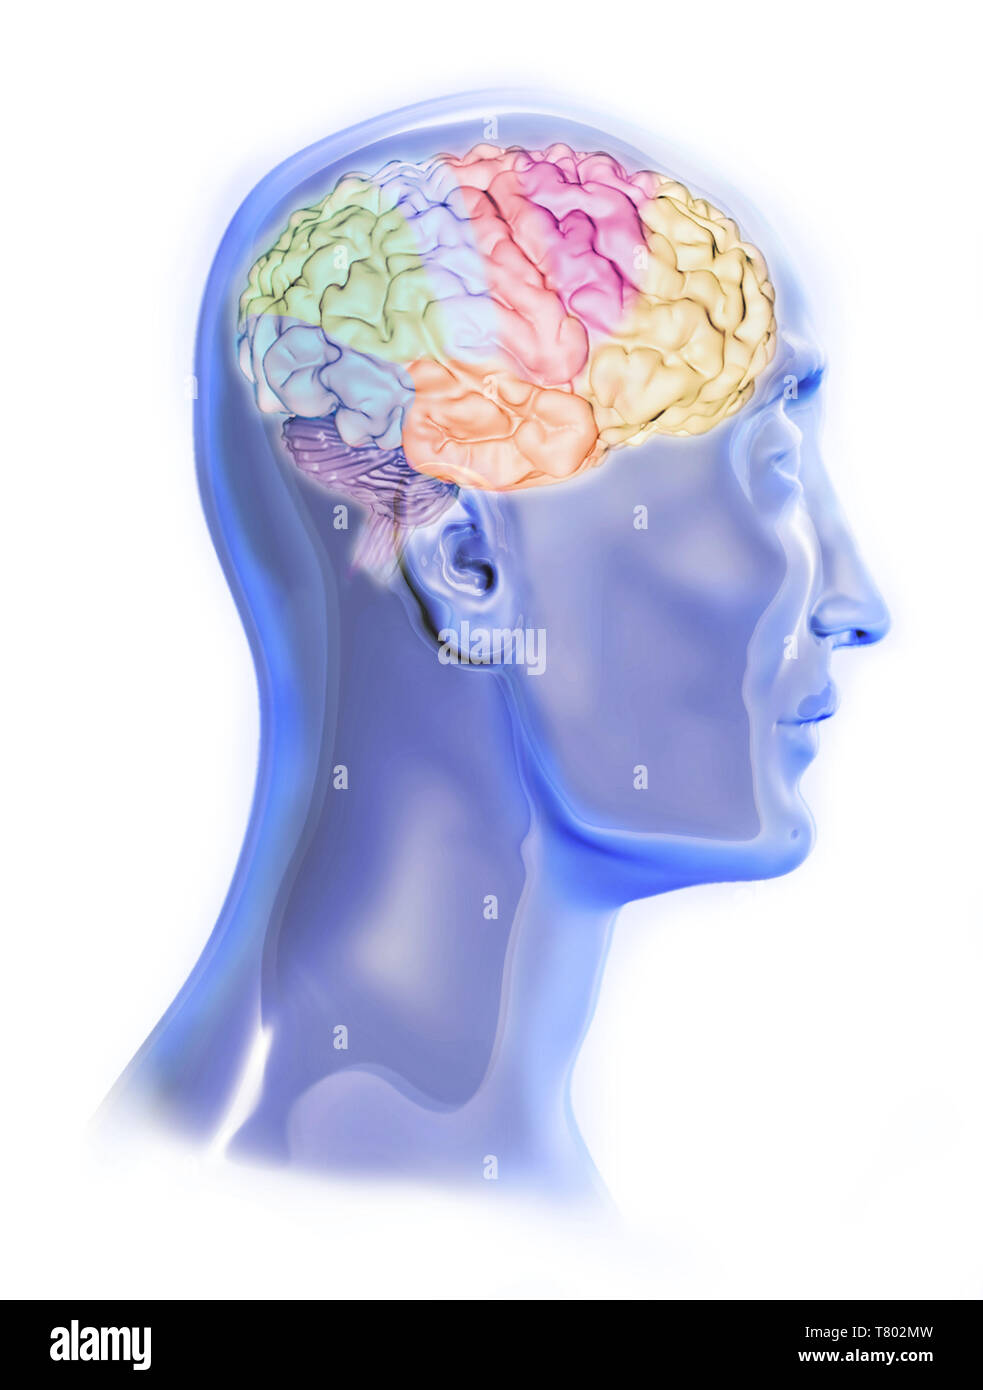 Head with Visible Brain, Illustration - Stock Image